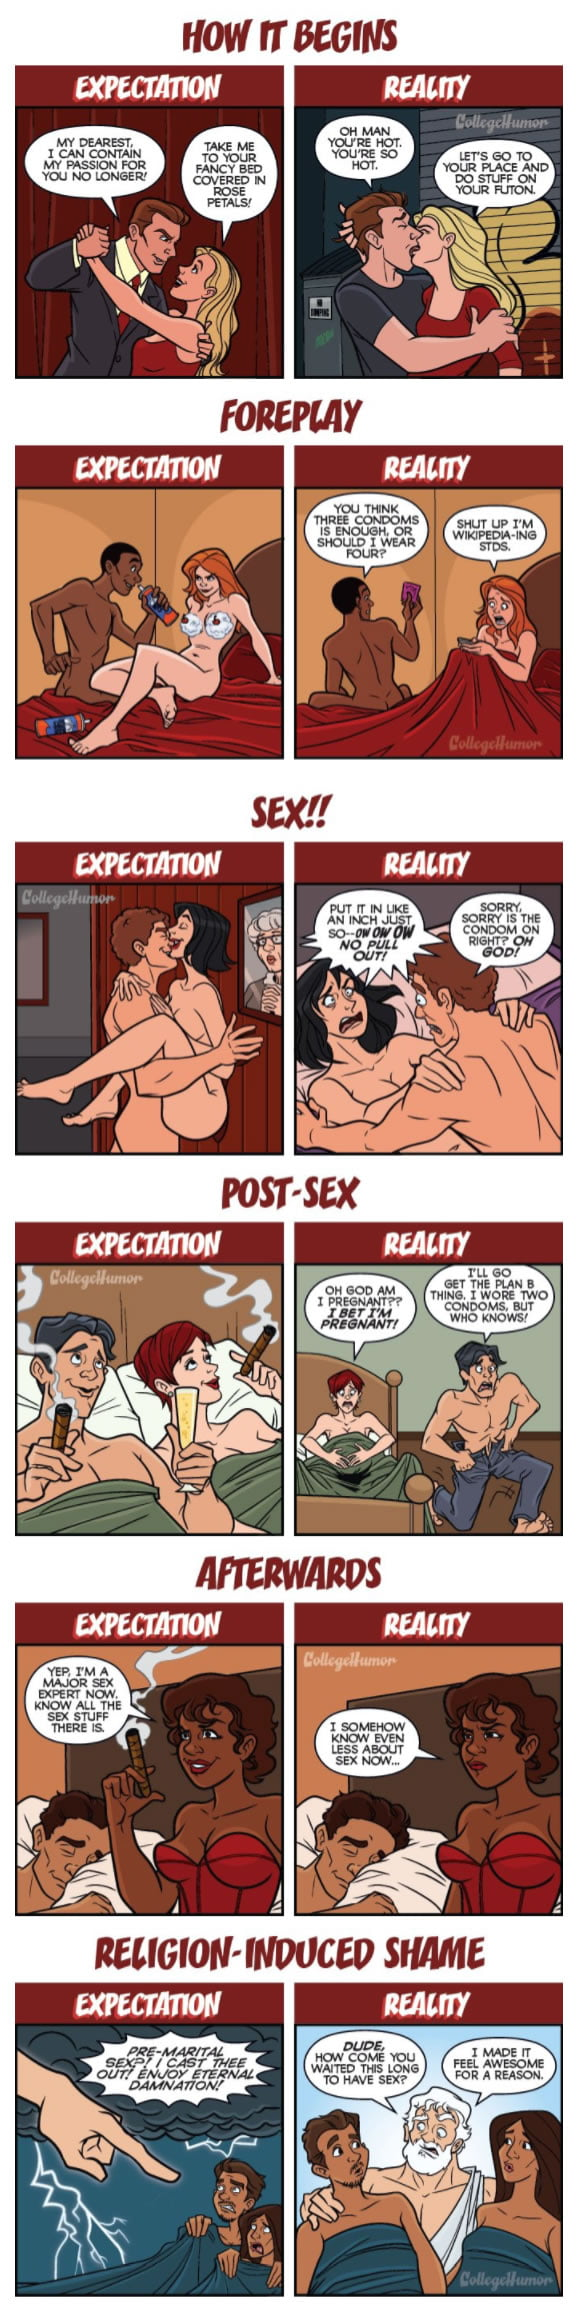 Losing Your Virginity: Expectations vs Reality